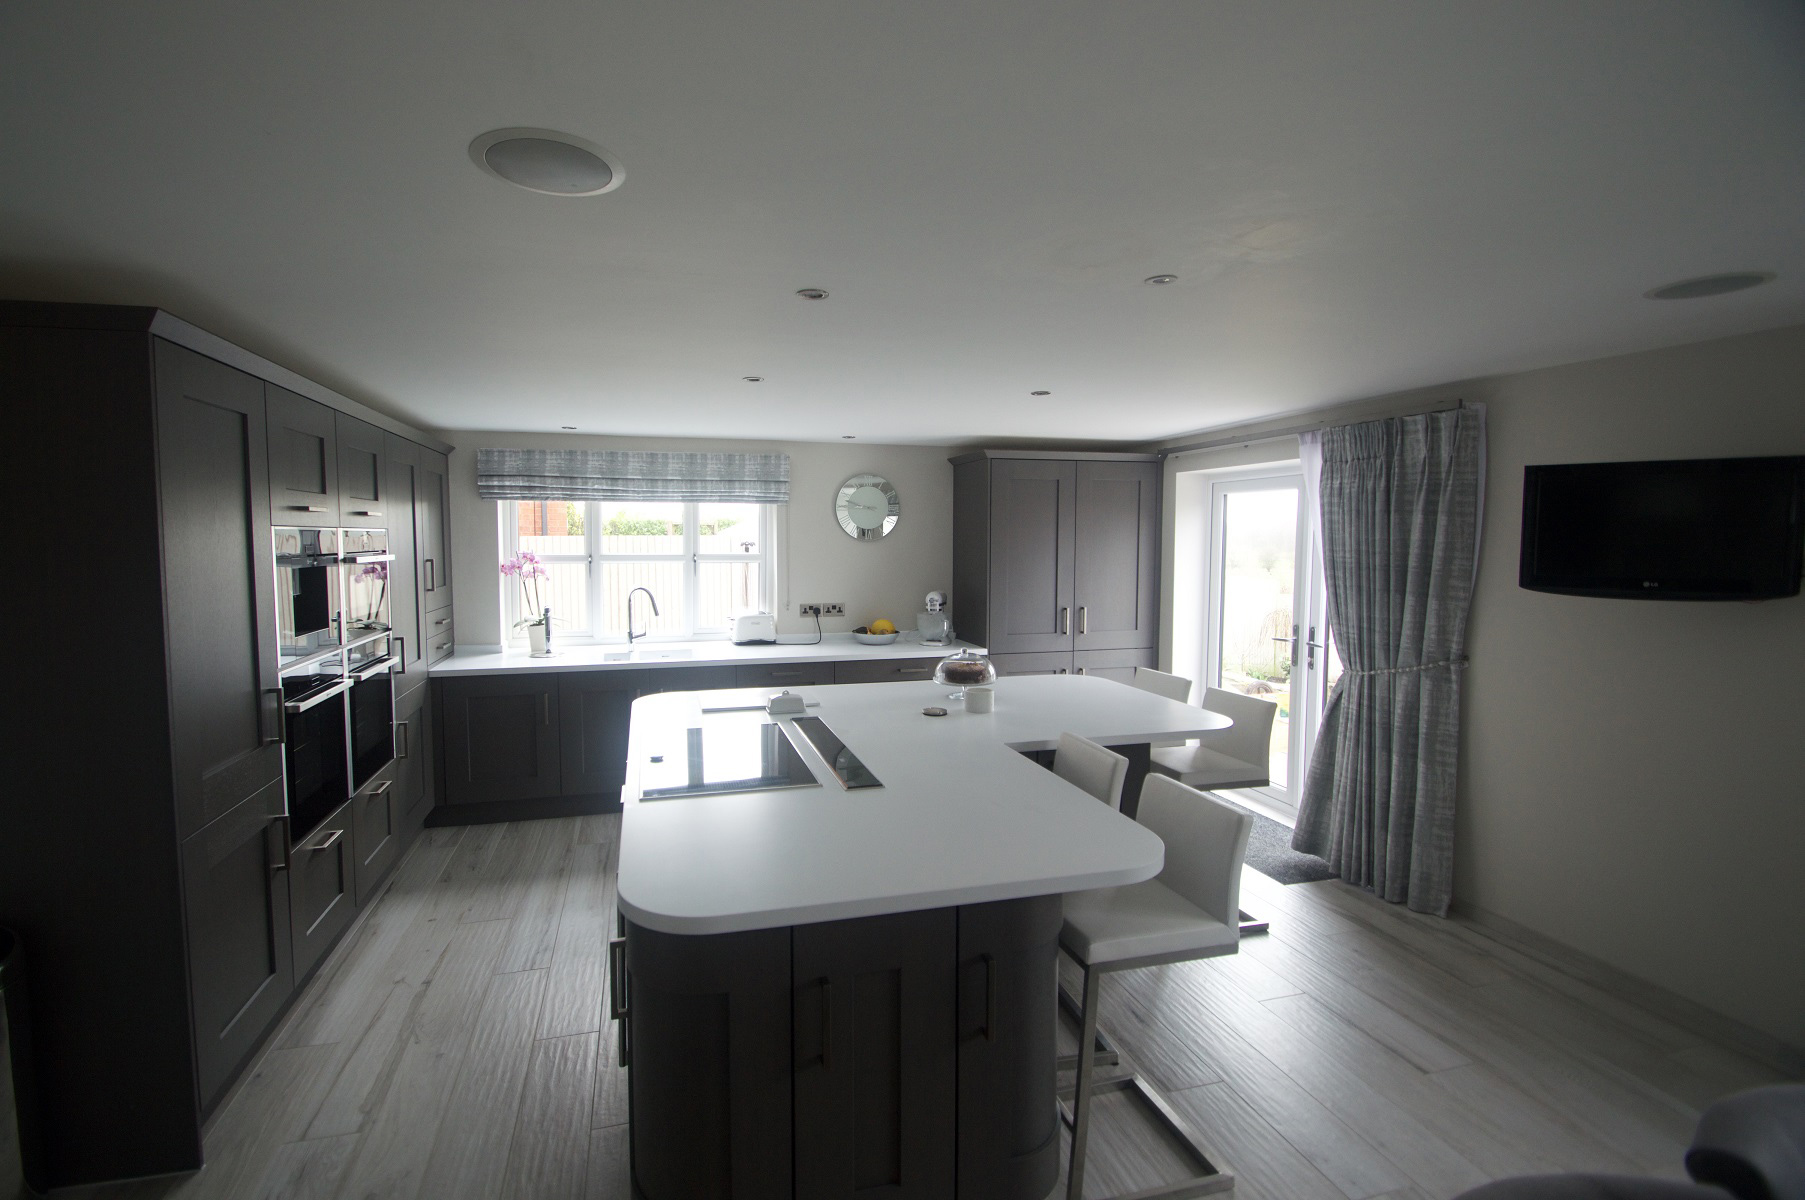 ... Clonmel Kitchen In Stained Anthracite Featuring Large Island Unit,  Designed By Elite Kitchens Of Manchester ...